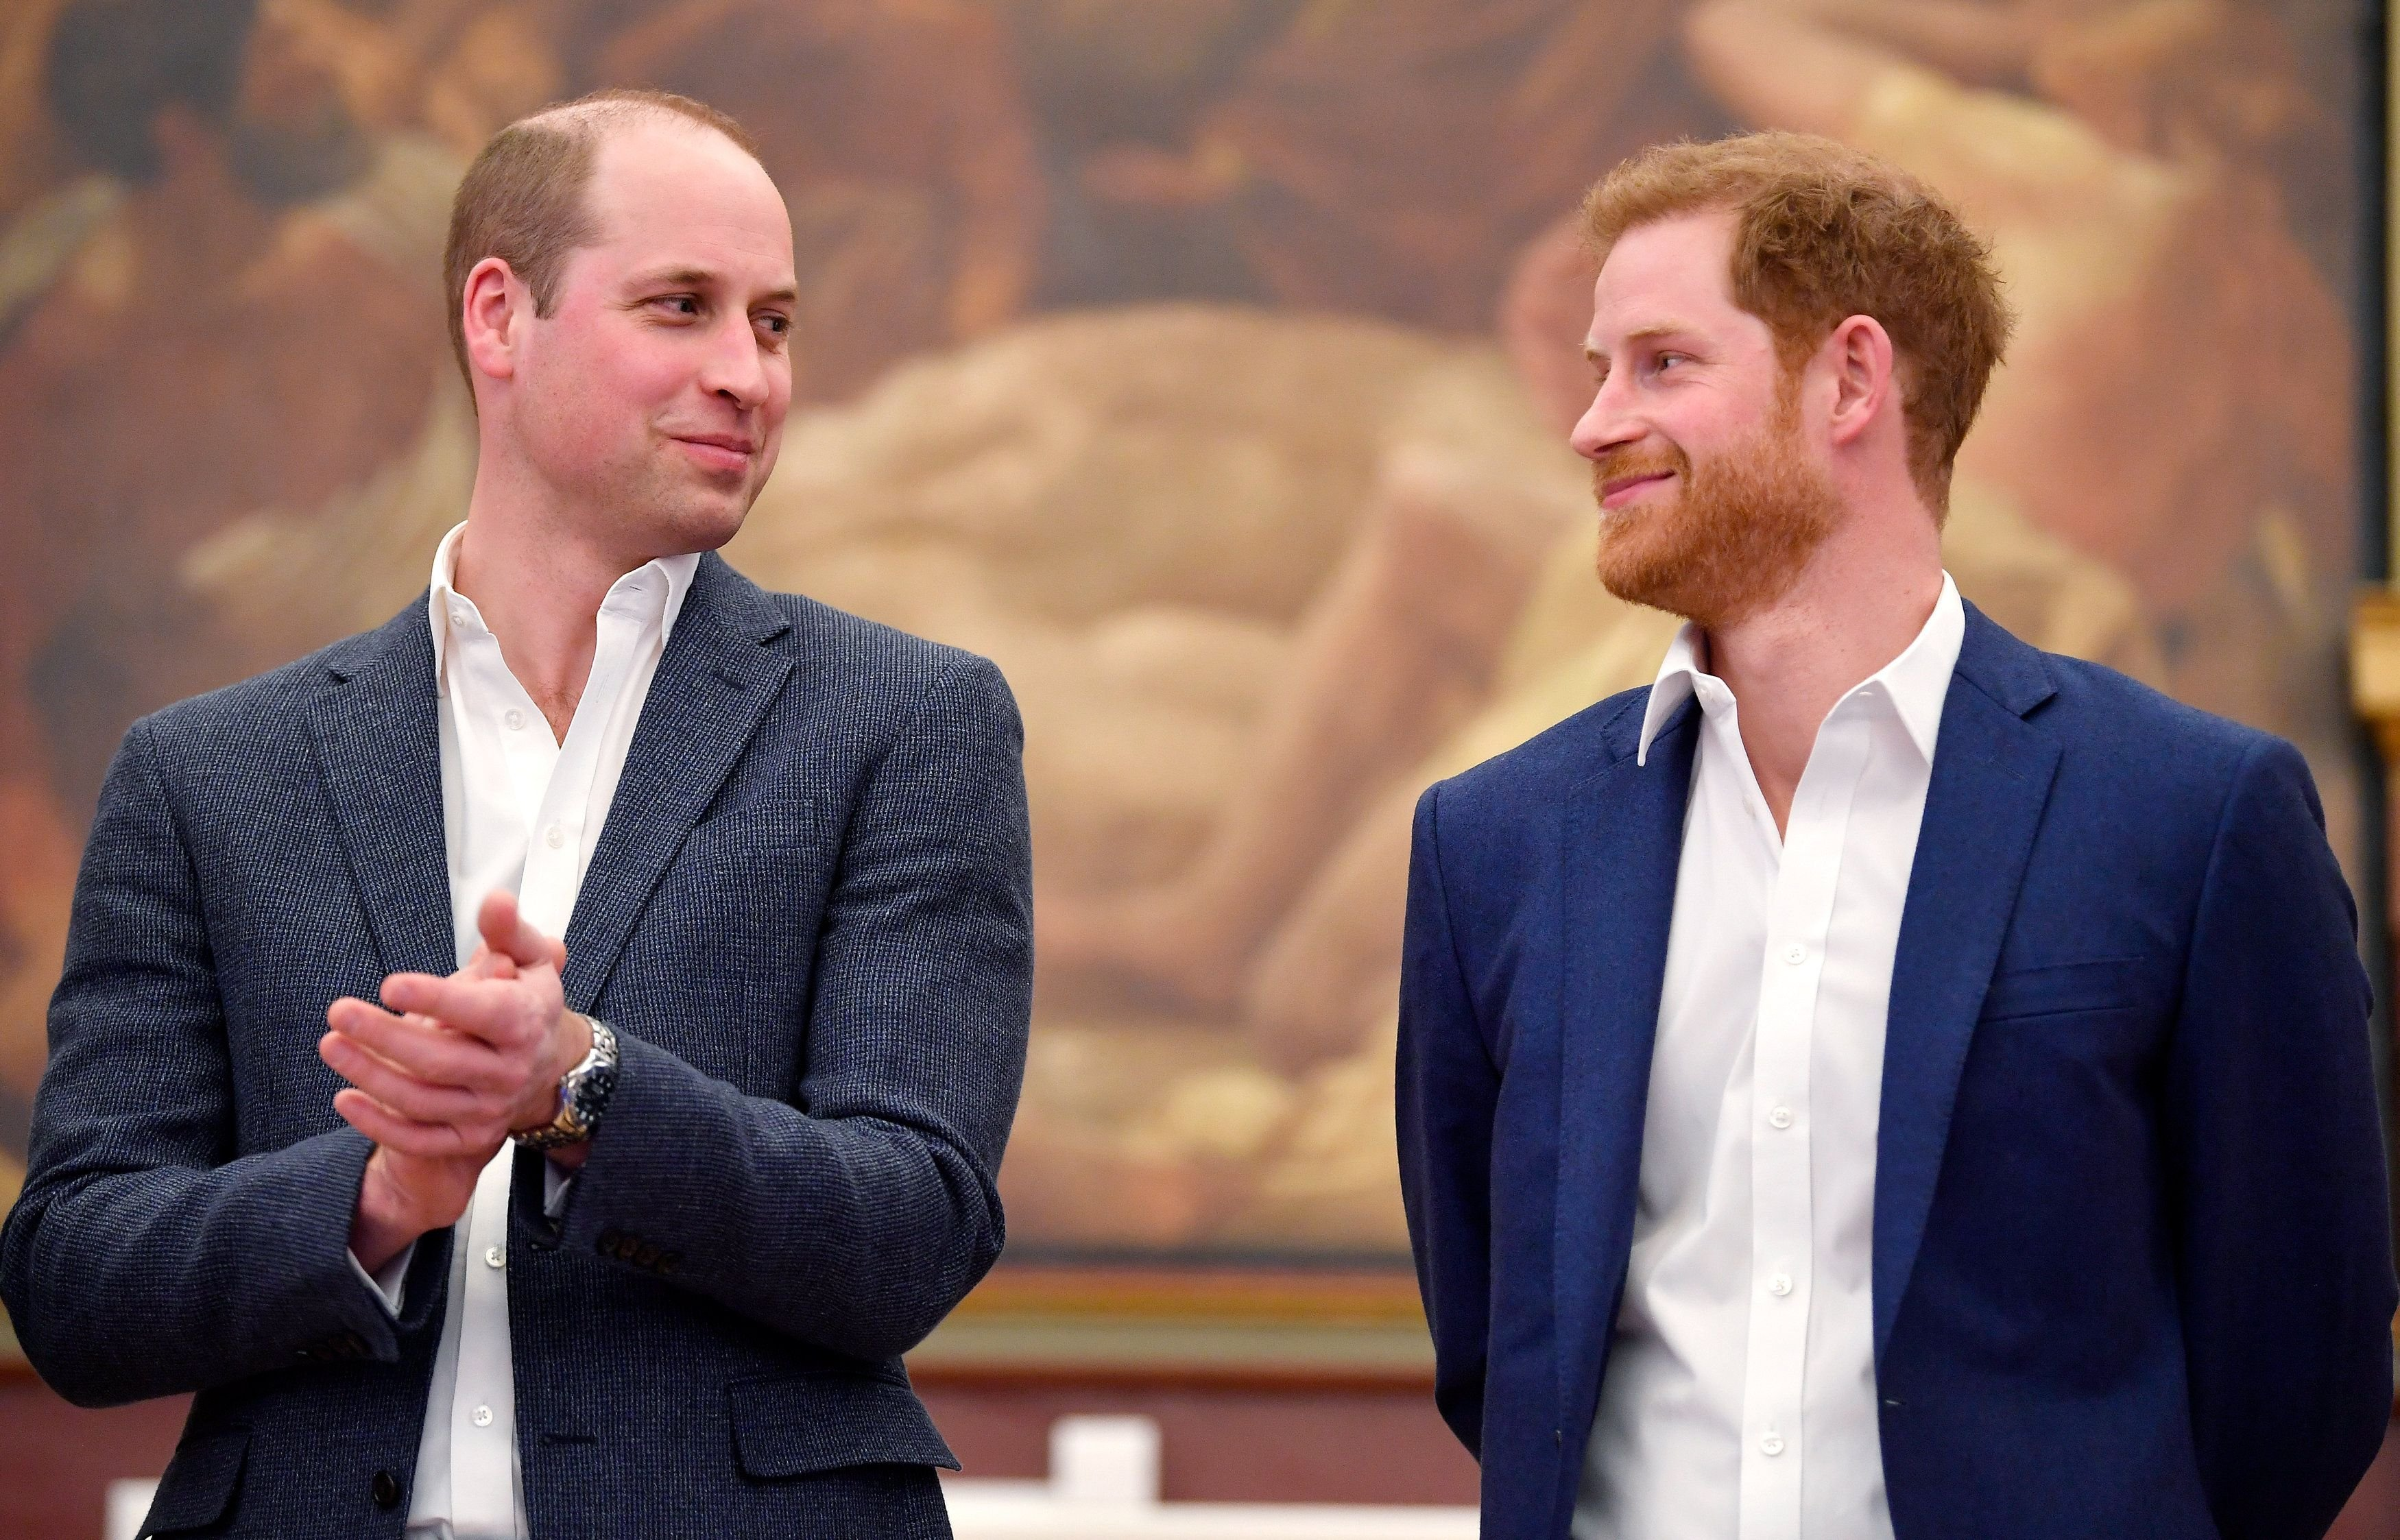 Prince William, Duke of Cambridge and Prince Harry at the opening of the Greenhouse Sports Centre on April 26, 2018 | Photo: Getty Images